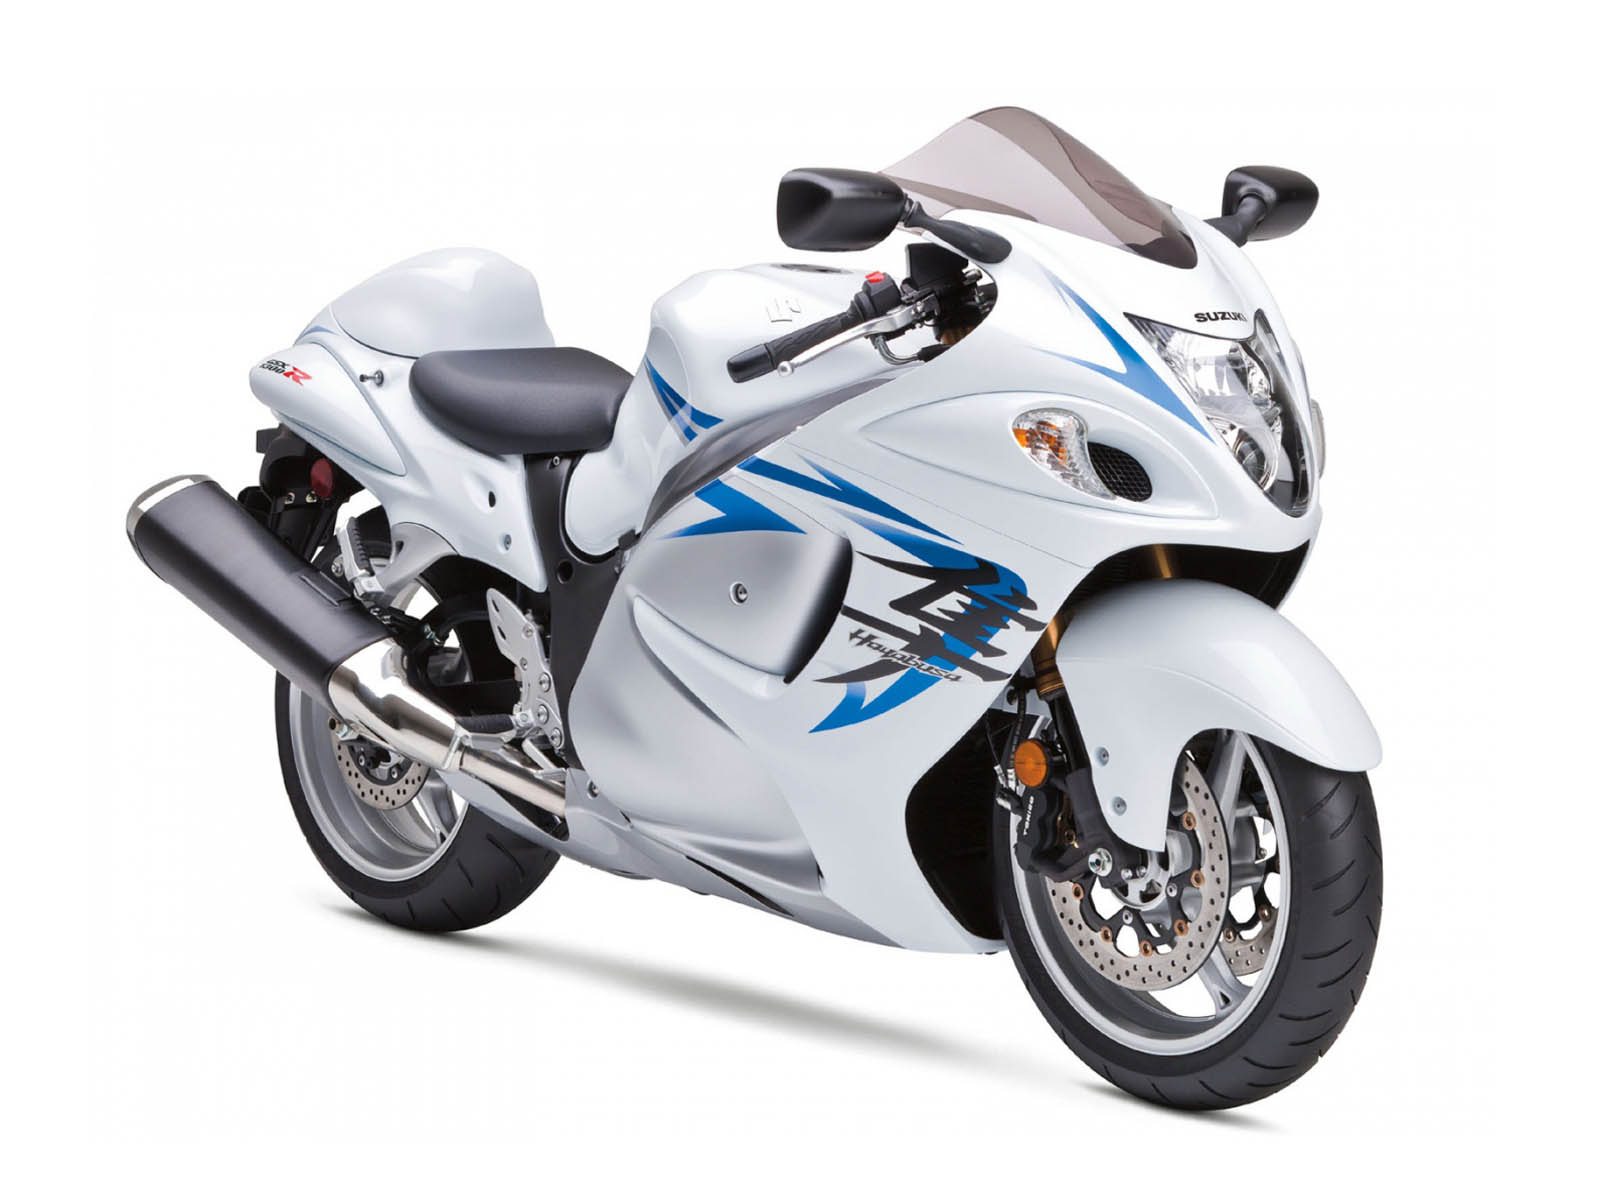 wallpapers suzuki hayabusa gsx1300r bike wallpapers. Black Bedroom Furniture Sets. Home Design Ideas